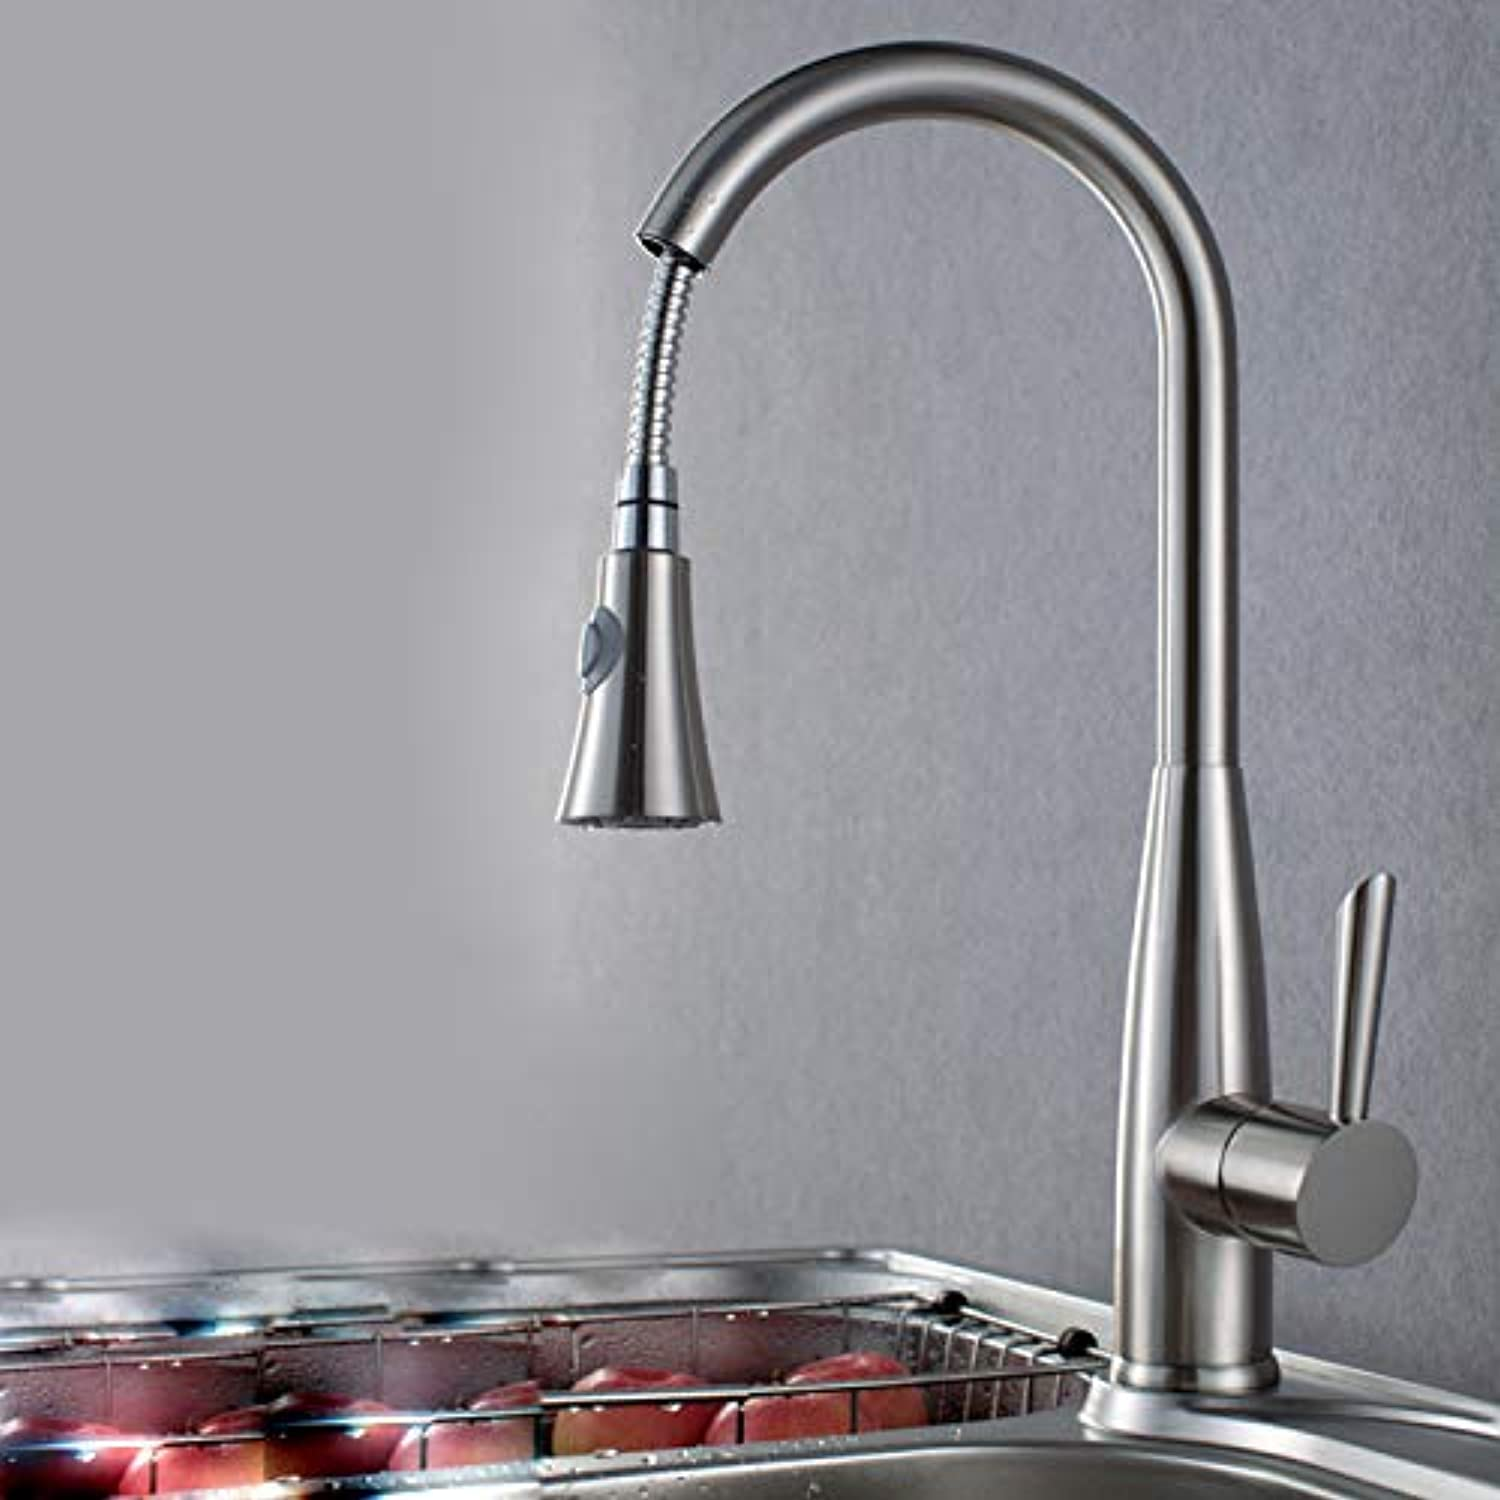 redOOY Taps Faucet Copper Pull Cold And Hot Water Basin Pull Kitchen Sink Faucet Drawing